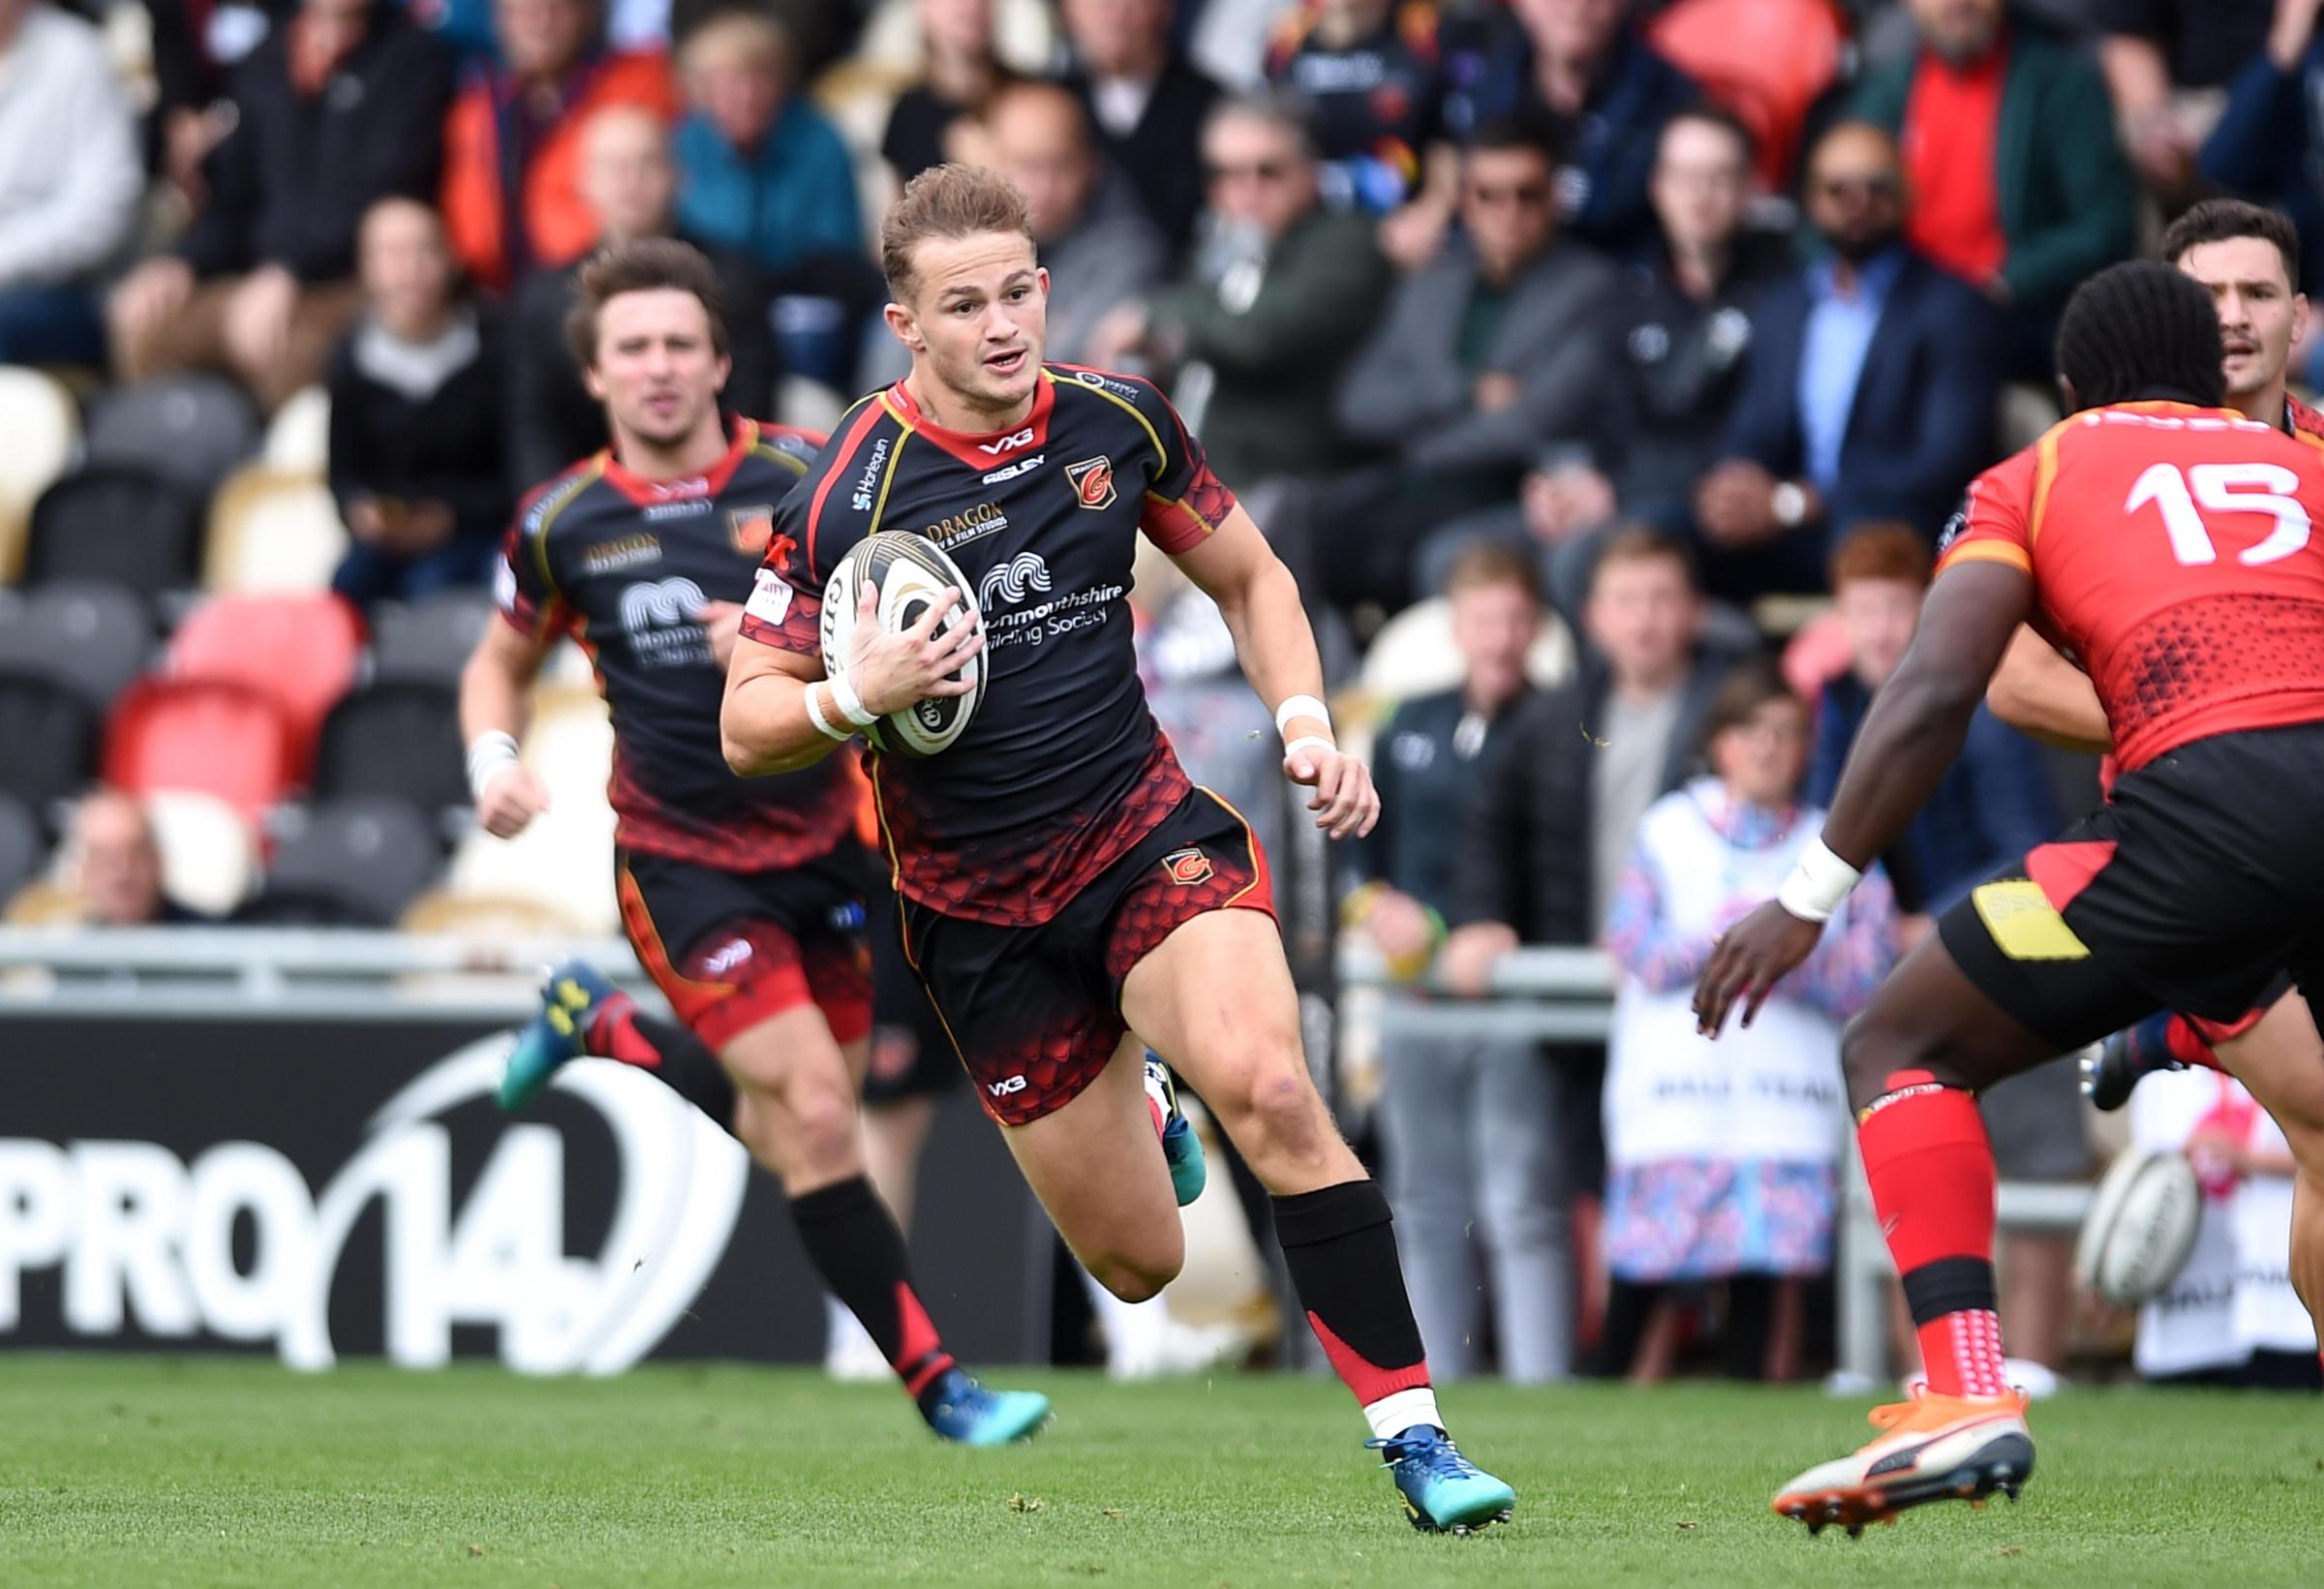 FRUSTRATED: Dragons wing Hallam Amos